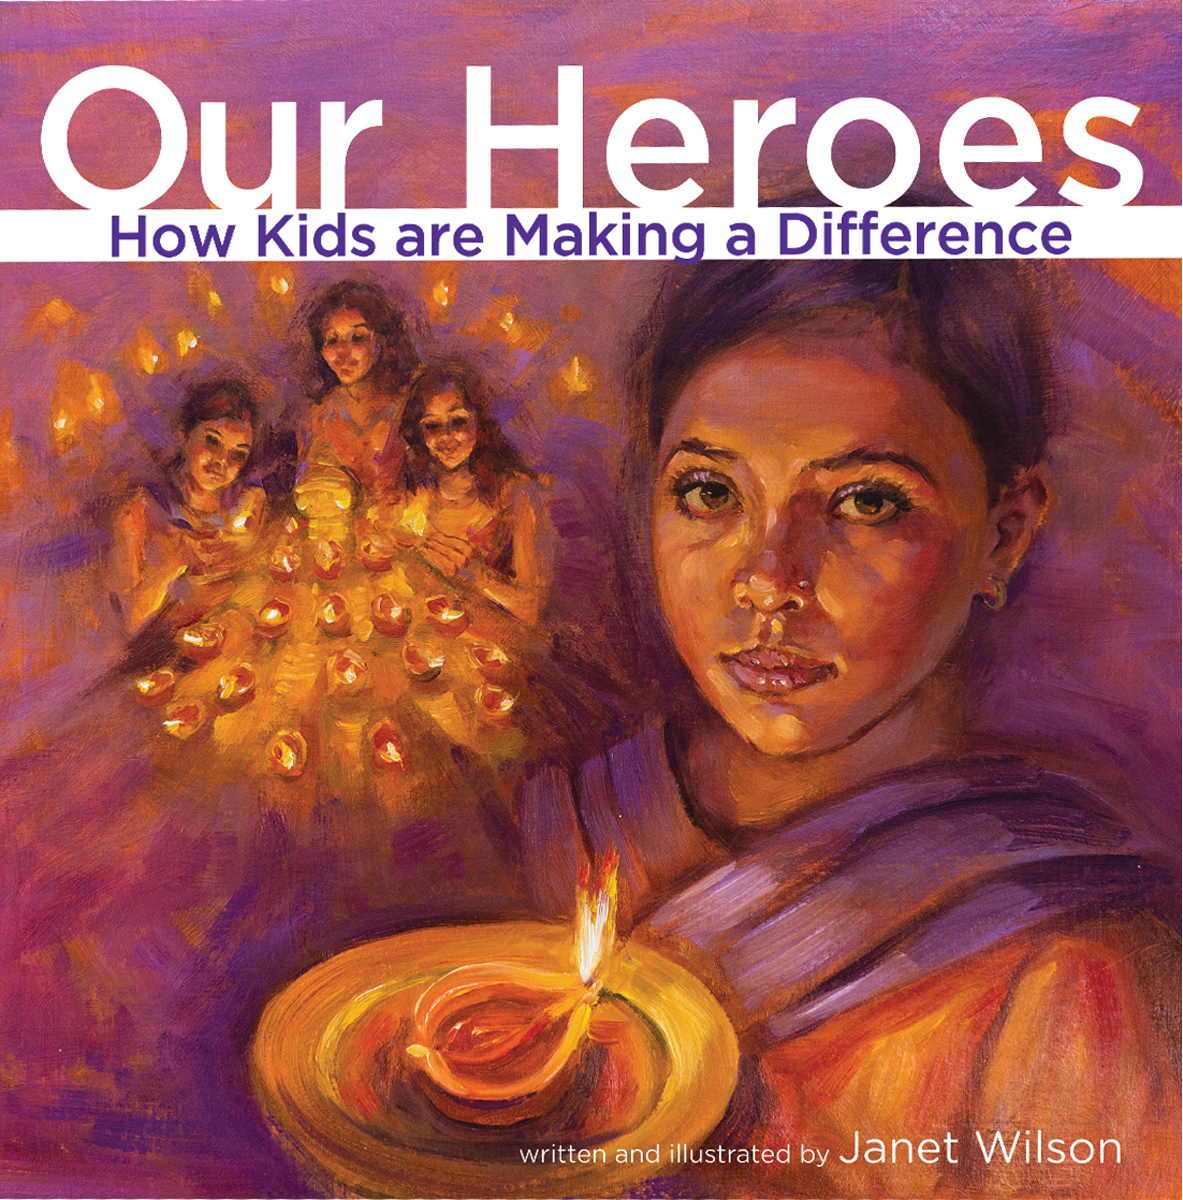 Our Heroes: How Kids are Making a Difference